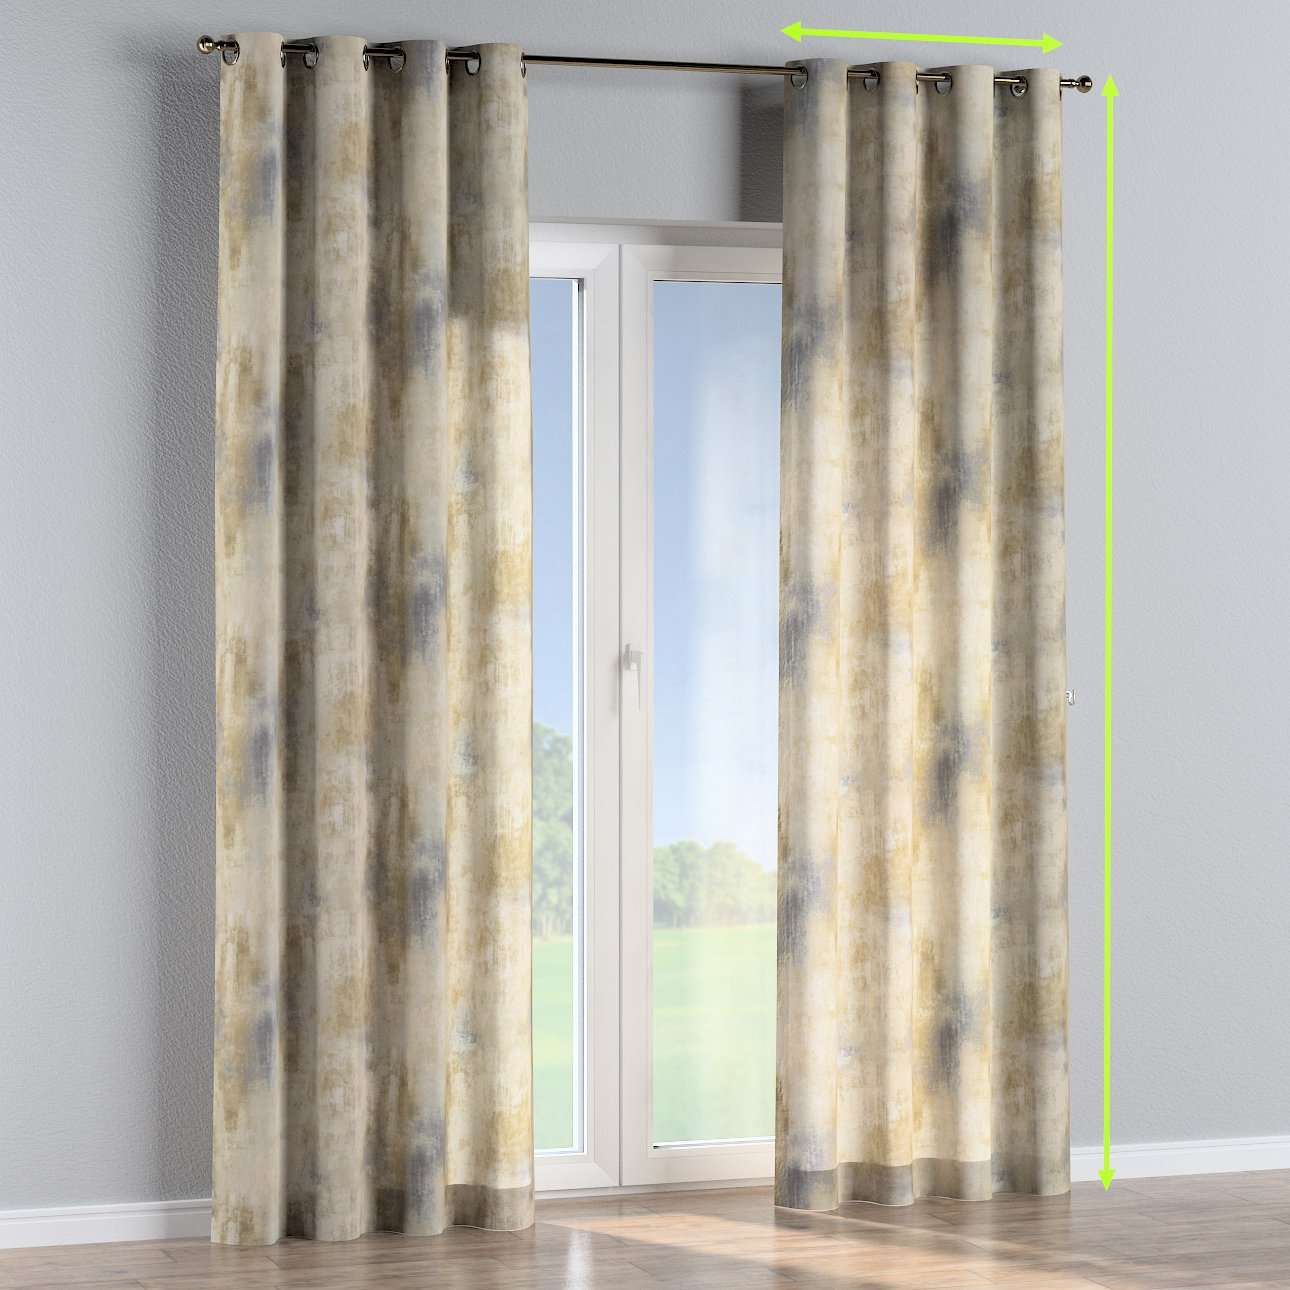 Eyelet curtains in collection Urban Jungle, fabric: 141-23